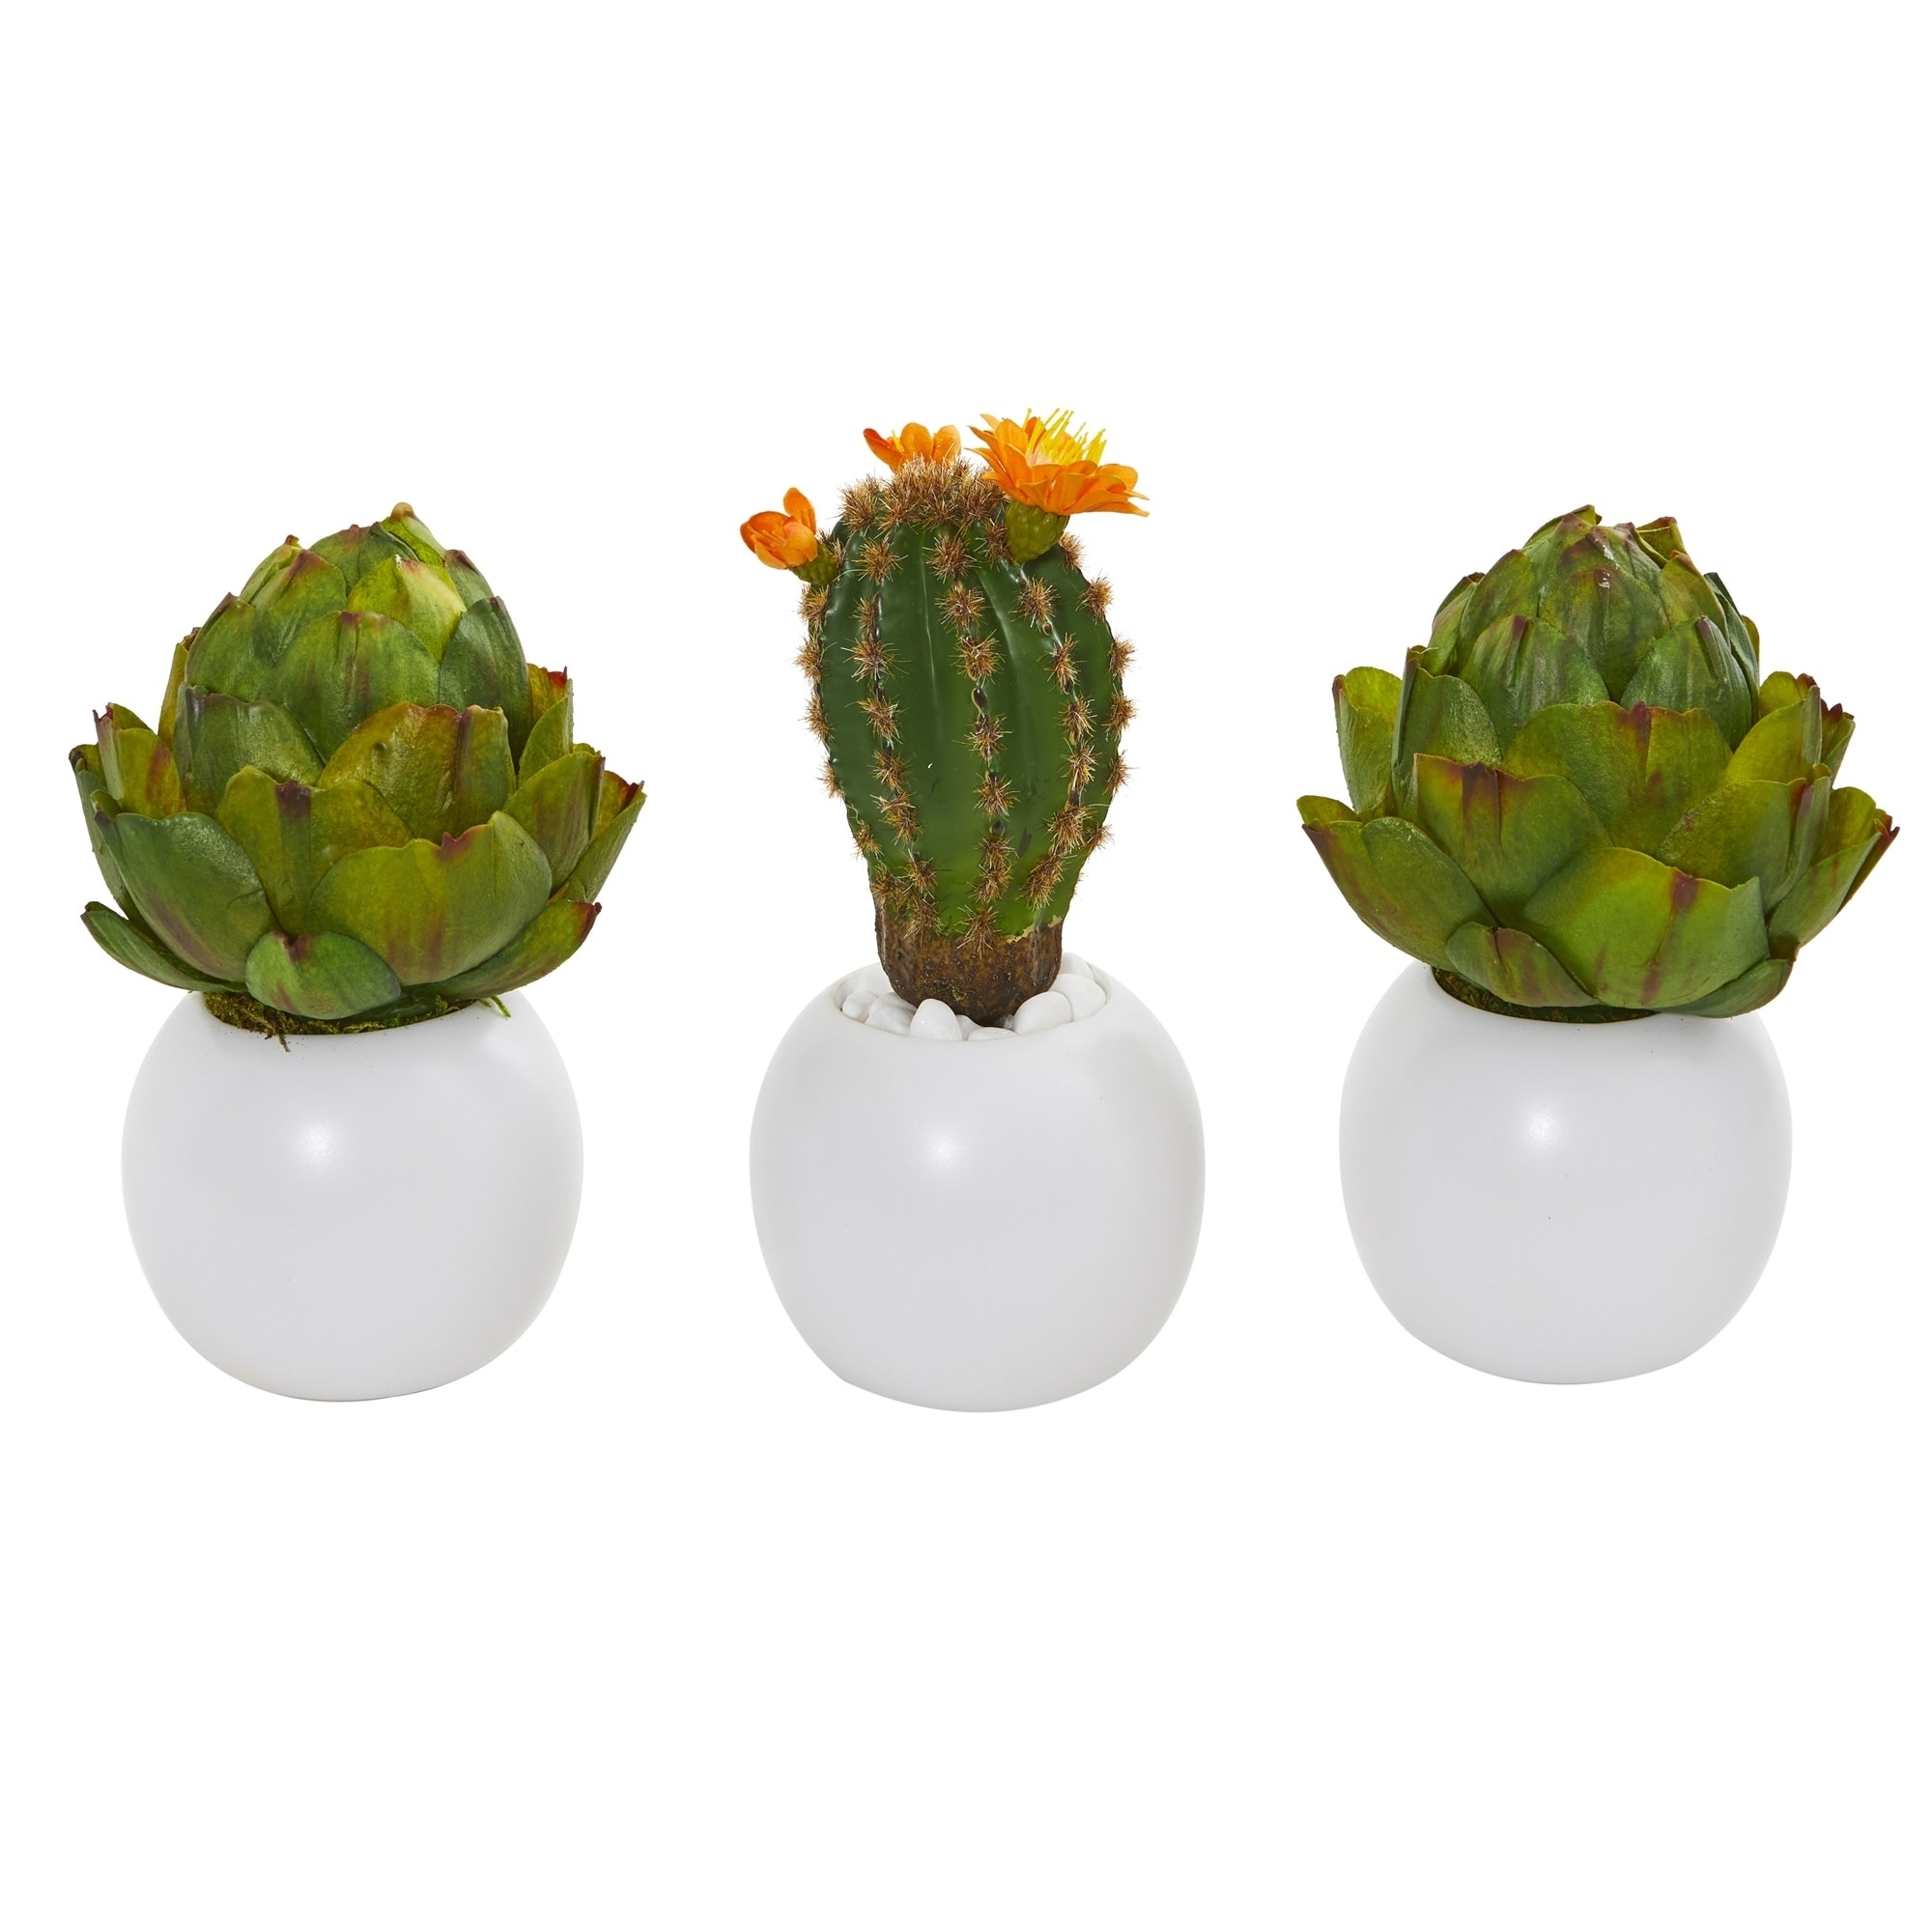 8 Artichoke and Cactus Artificial Plant in White Planter (Set of 3)